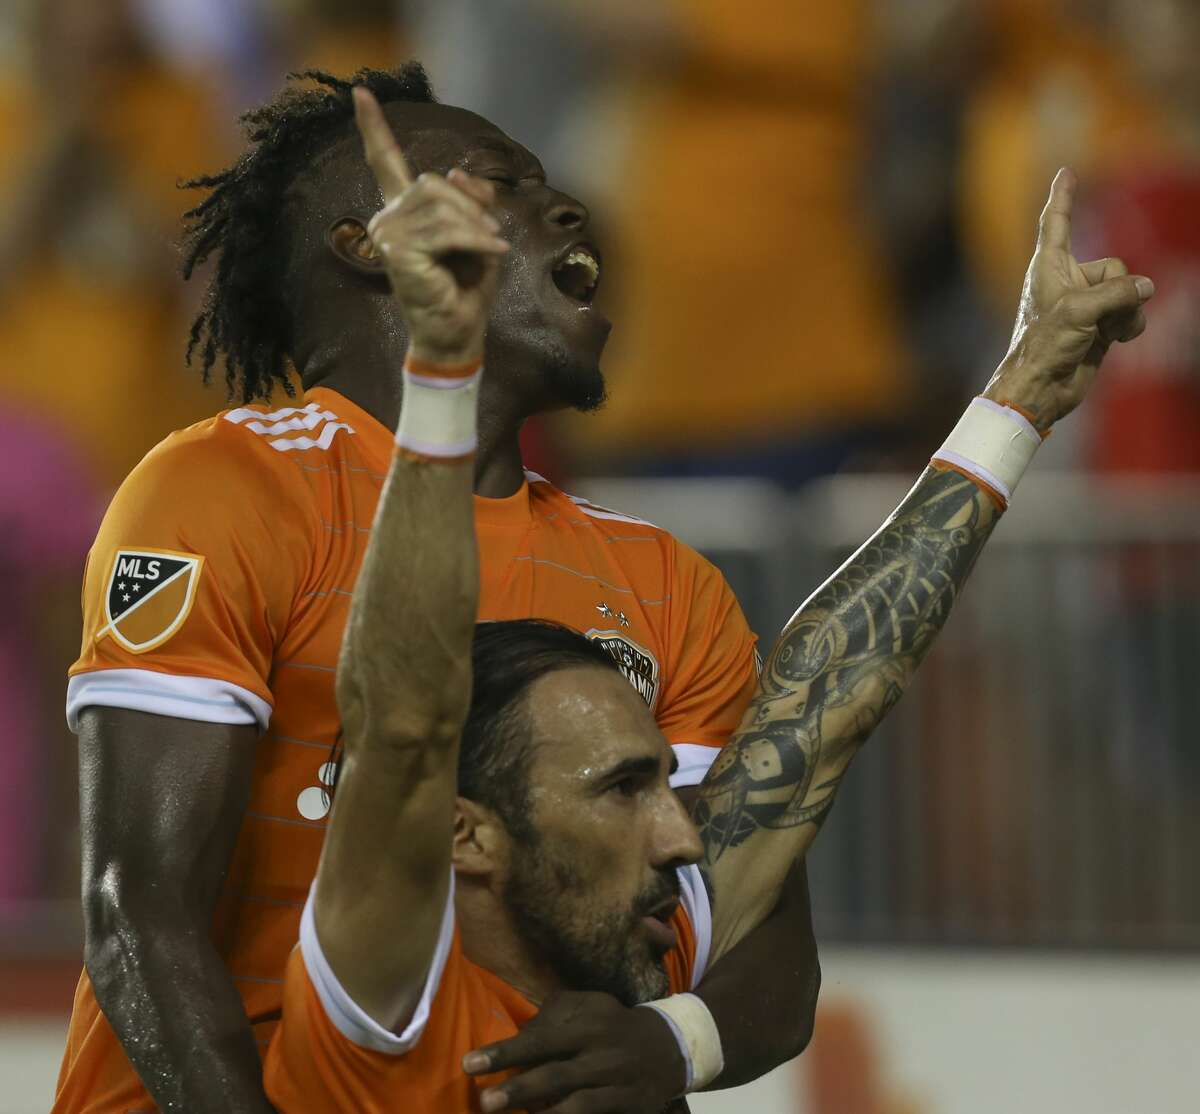 Houston Dynamo forward Alberth Elis (17) and forward Vicente Sanchez (10) celebrating Sanchez's first goal during the second half of the game at BBVA Compass Stadium Saturday, Aug. 12, 2017, in Houston. Houston Dynamo defeated San Jose Earthquakes 3-0.( Yi-Chin Lee / Houston Chronicle )